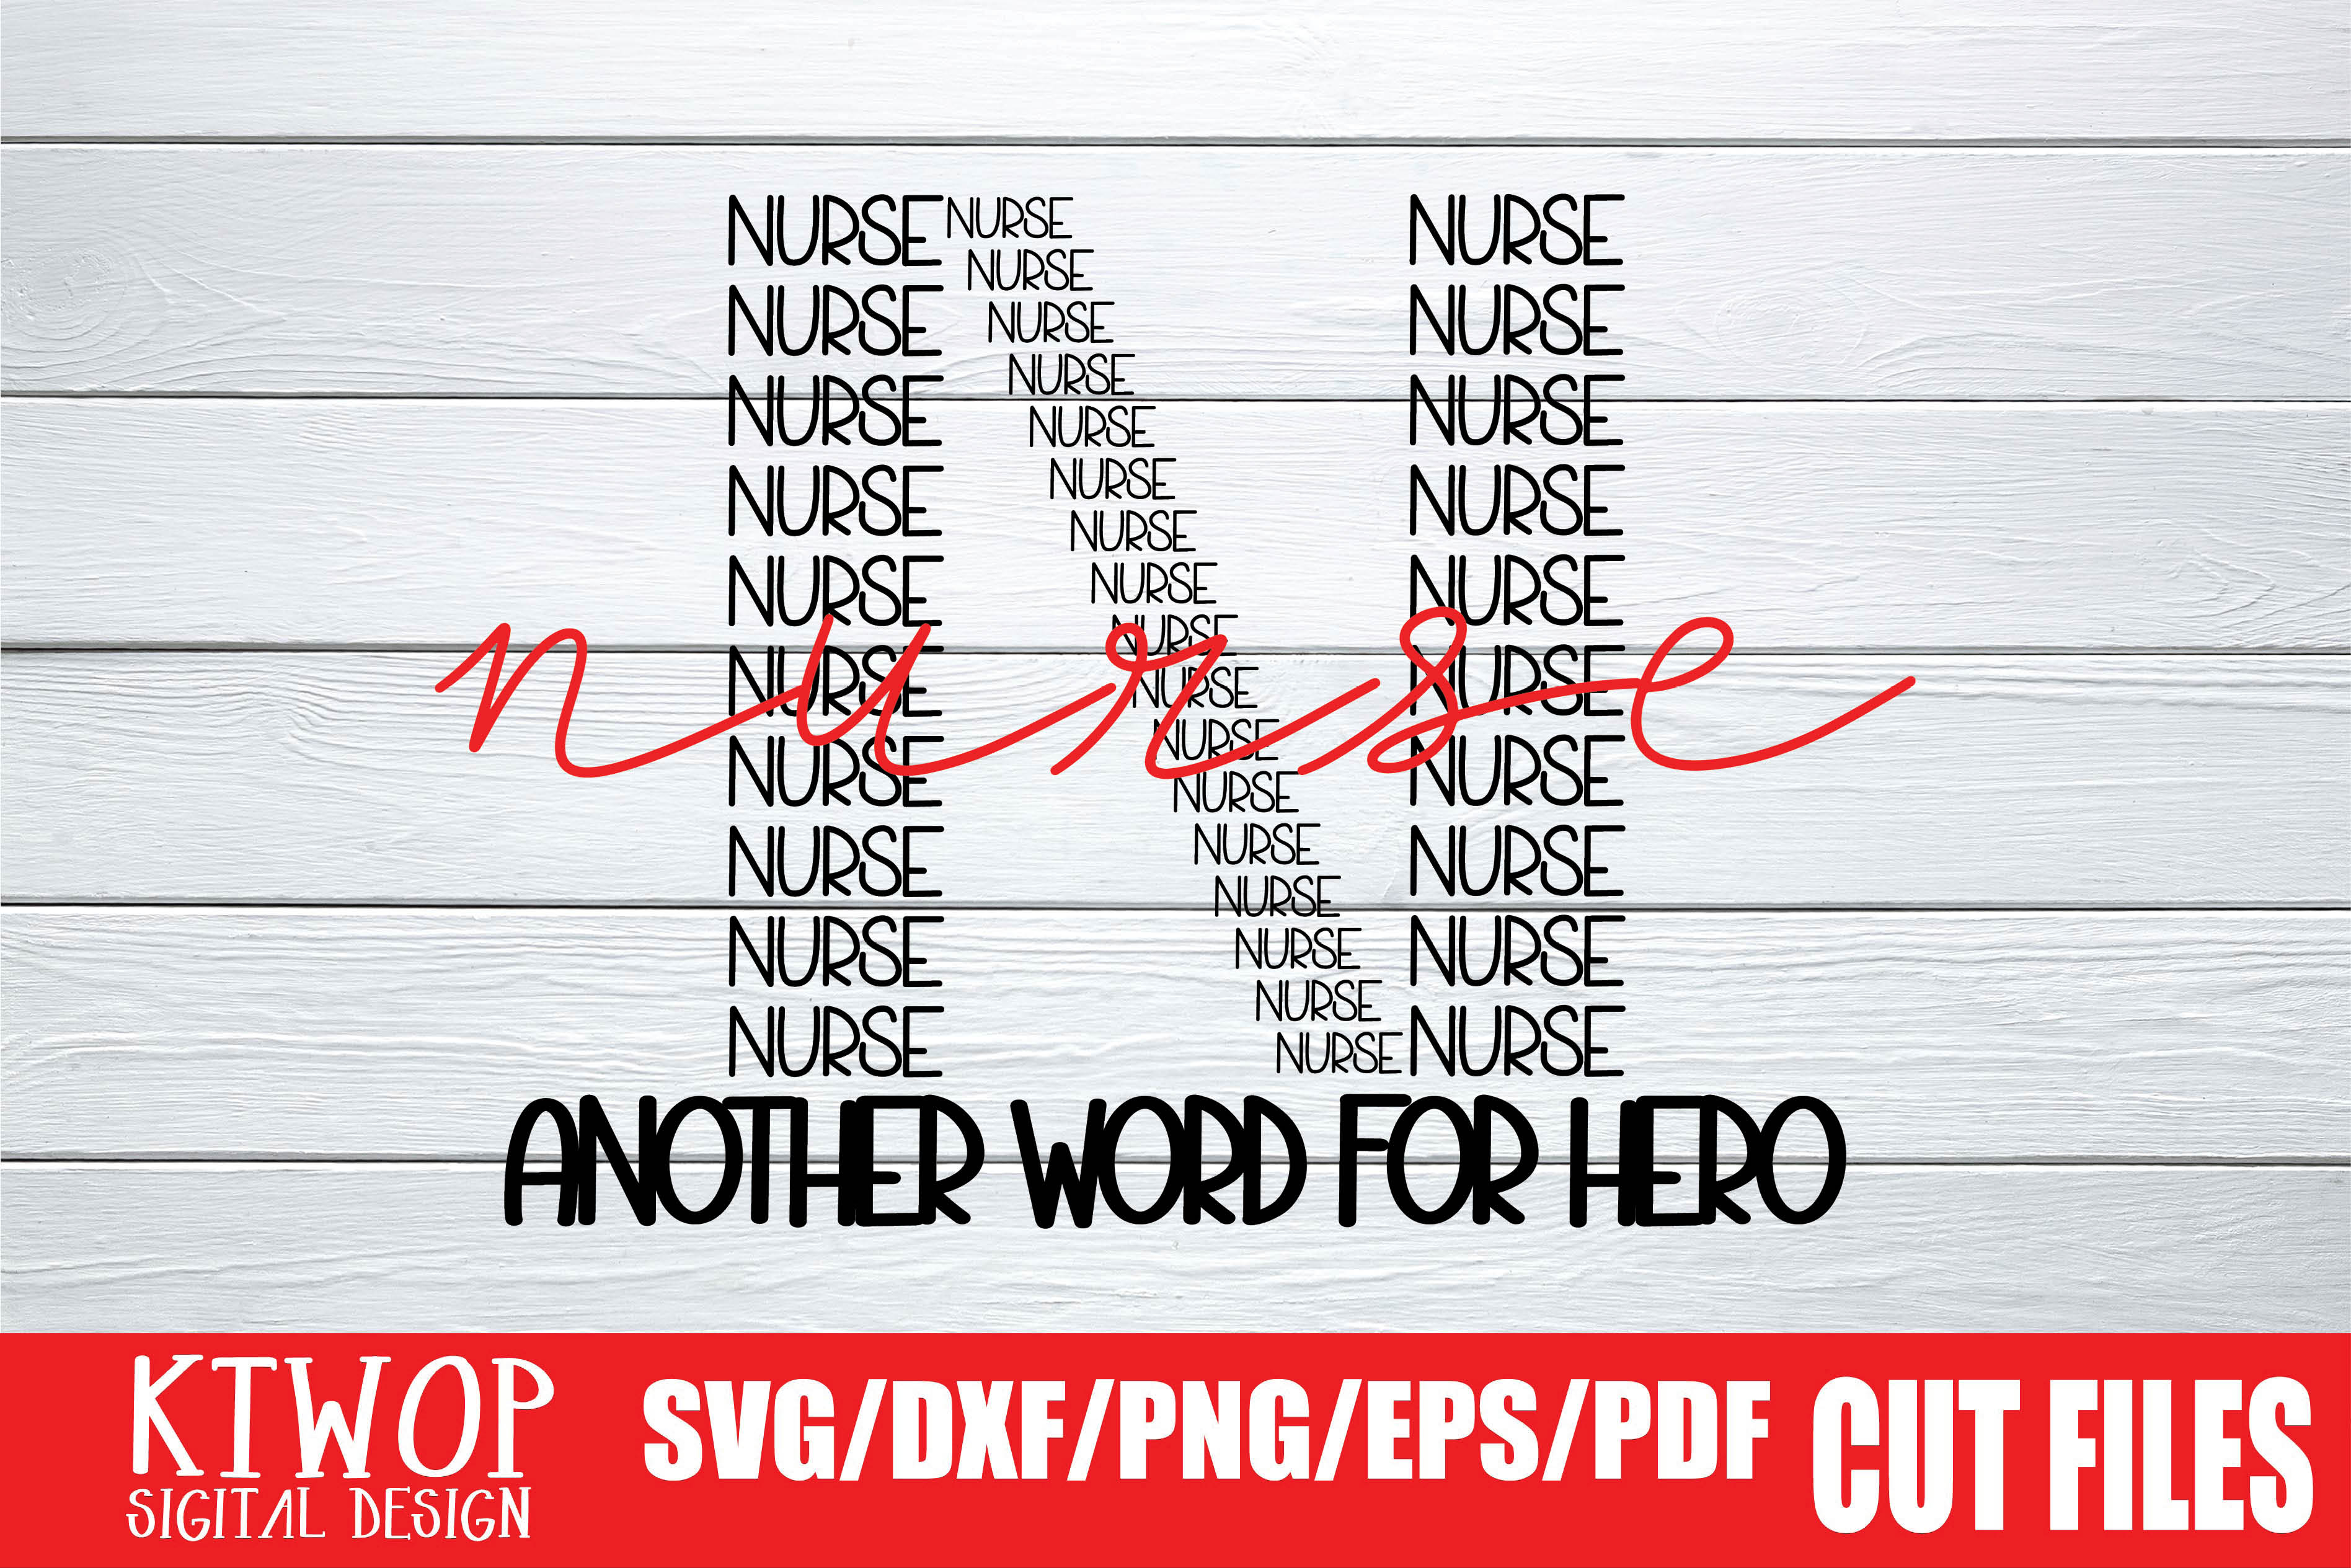 Download Free Nurse Another Word For Hero 2020 Graphic By Ktwop Creative Fabrica for Cricut Explore, Silhouette and other cutting machines.